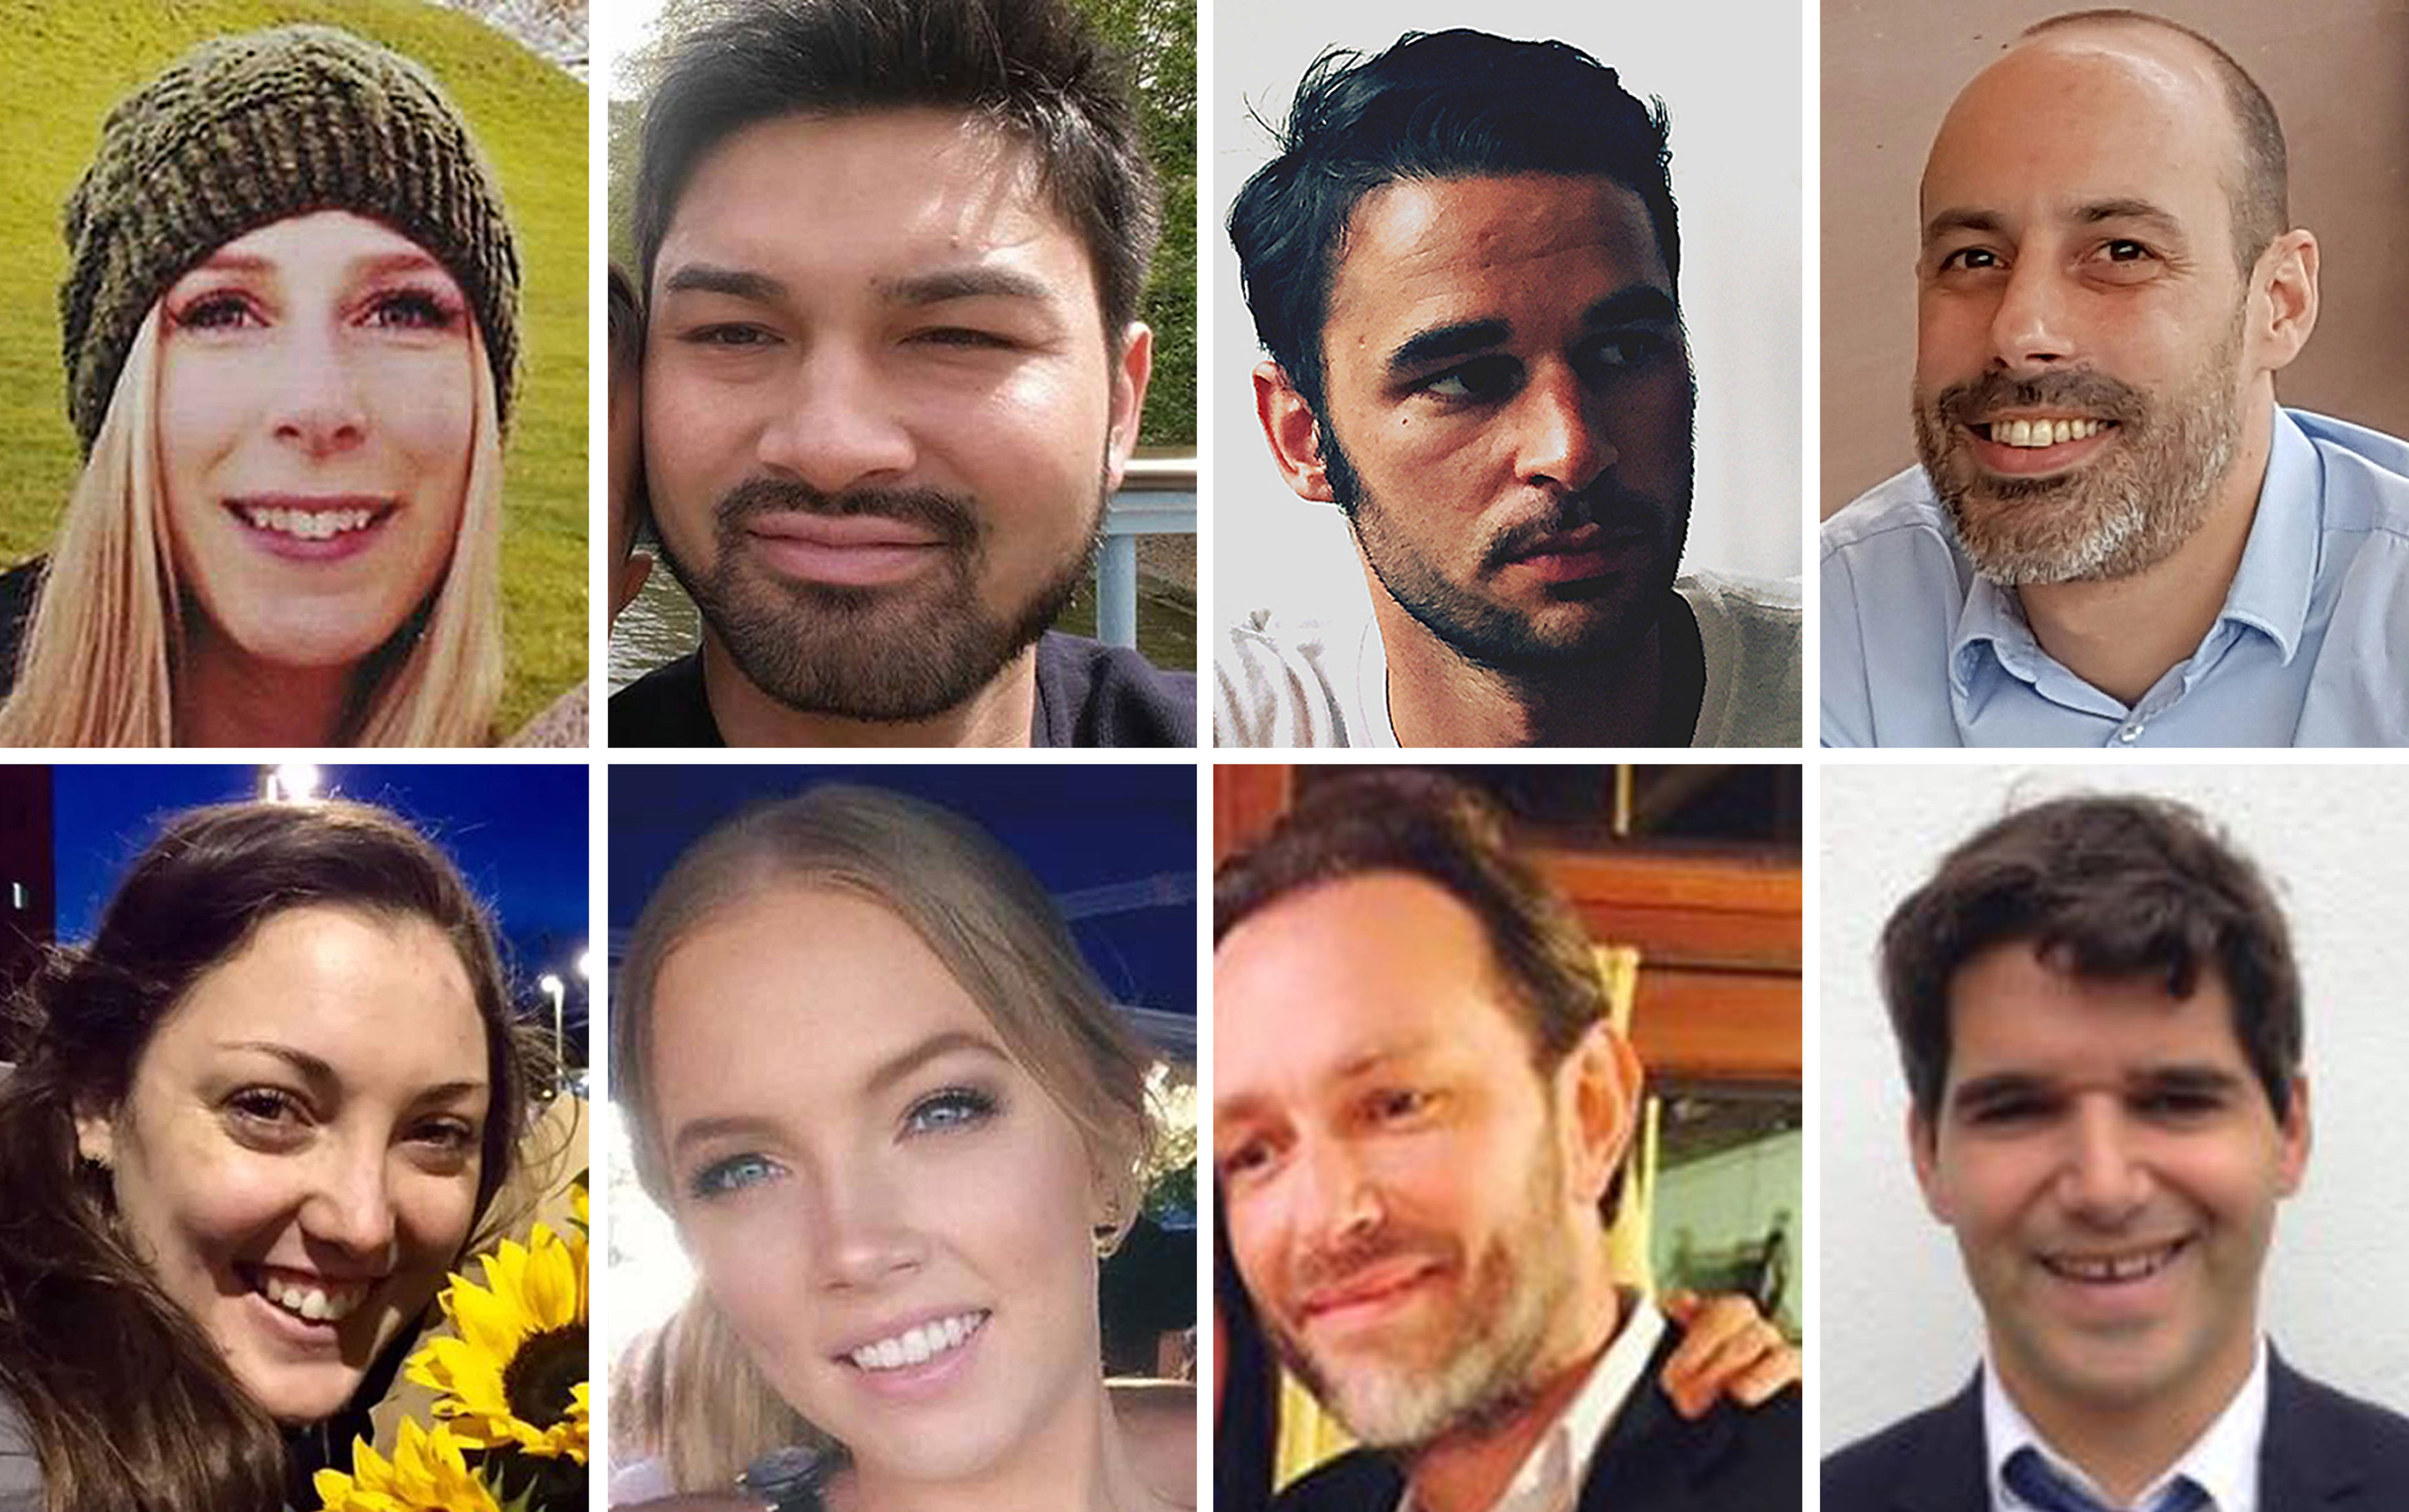 Pictures of terror attack victims